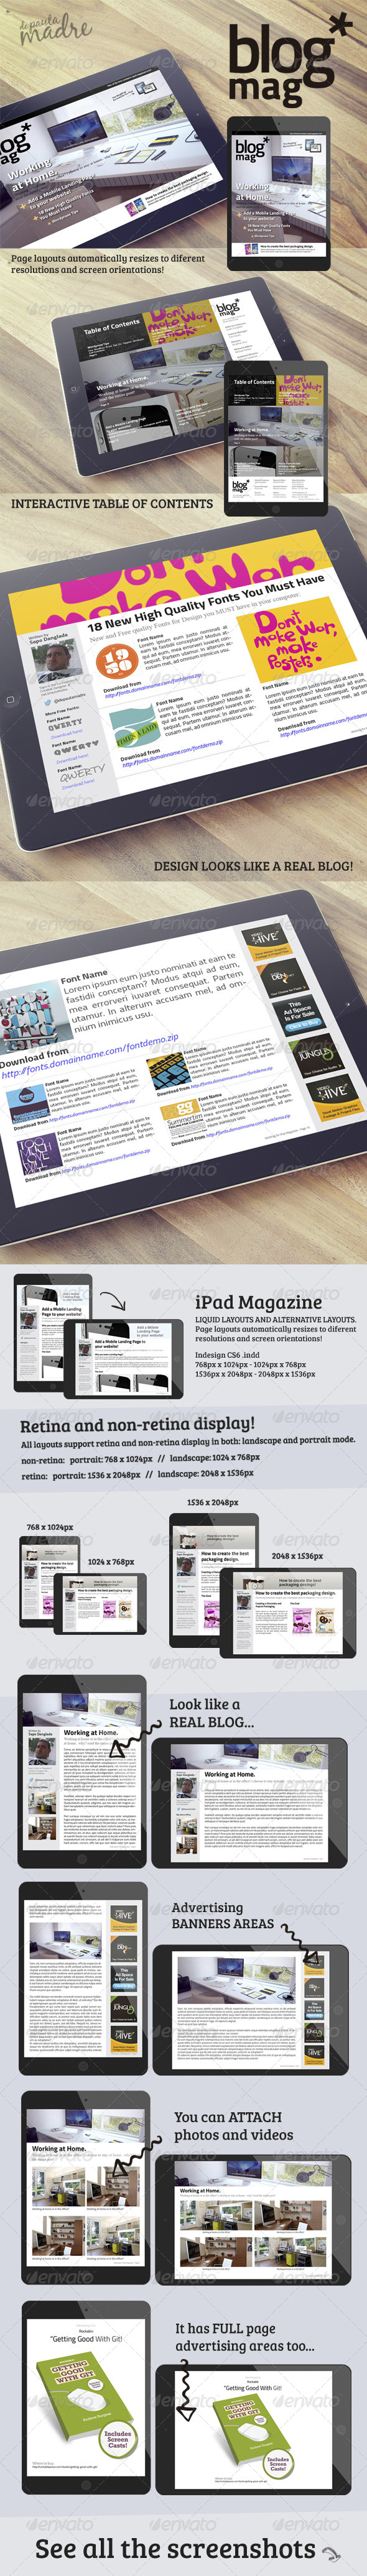 iPad Magazine that Looks Like a Blog - Digital Magazines ePublishing